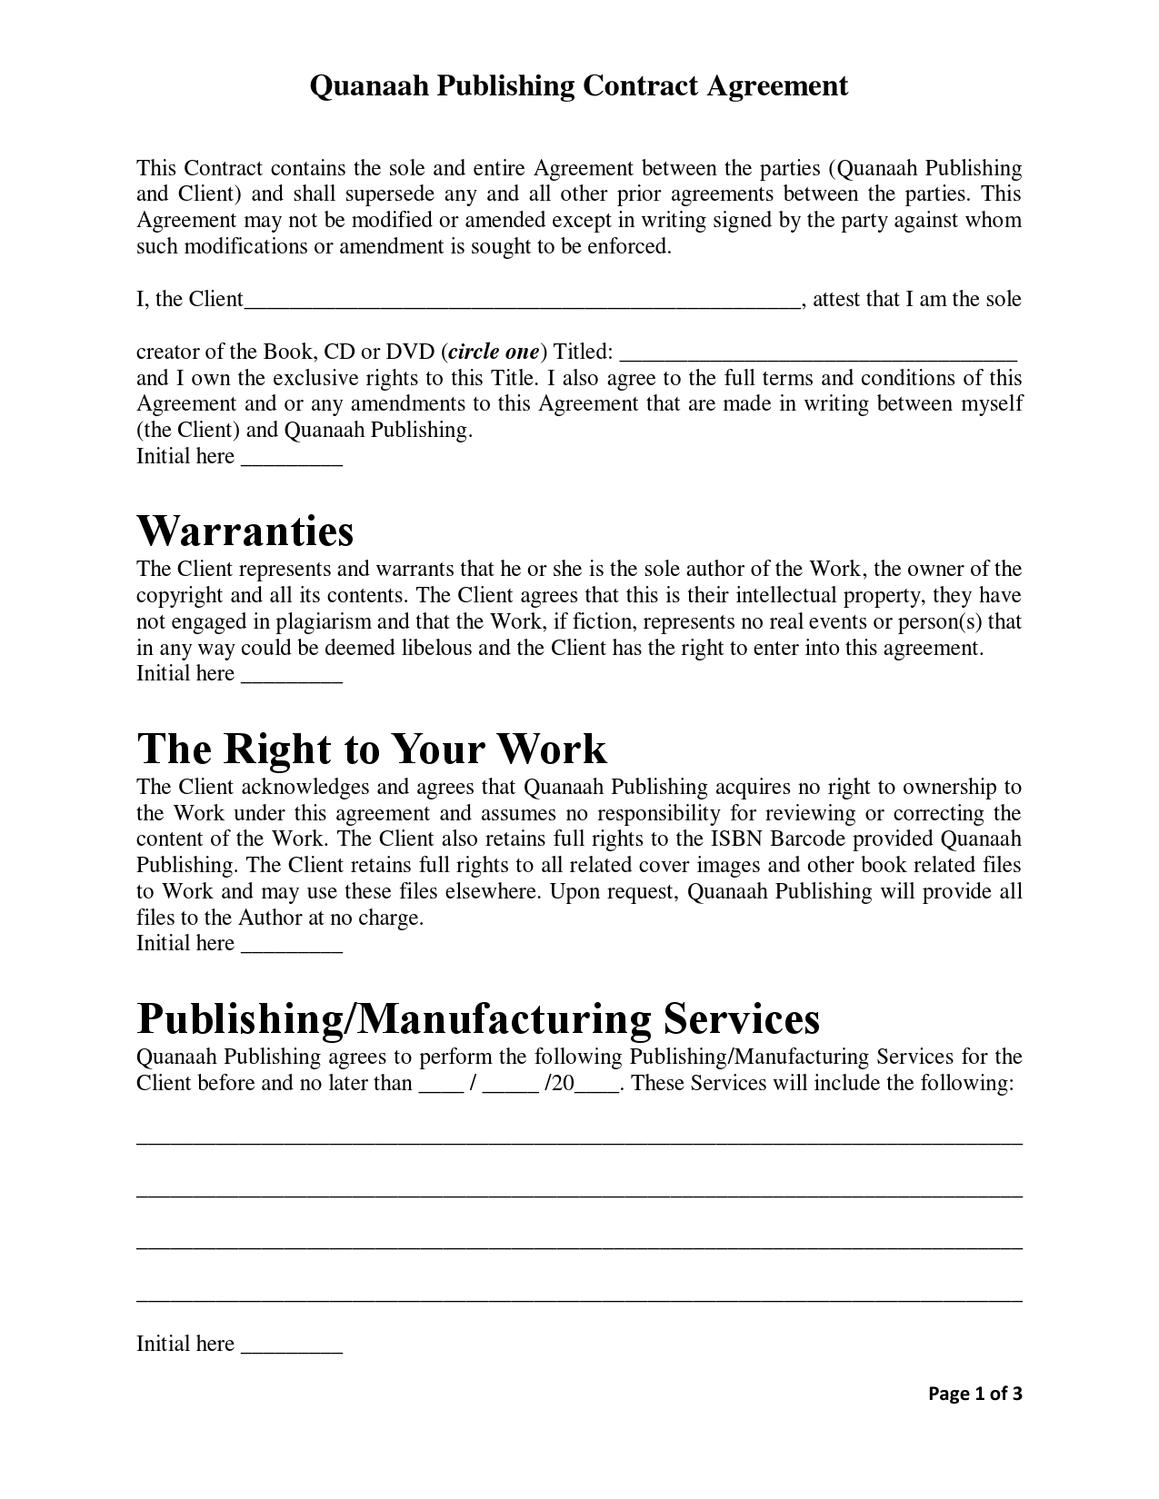 quanaah publishing contract agreement by saladin allah issuu. Black Bedroom Furniture Sets. Home Design Ideas